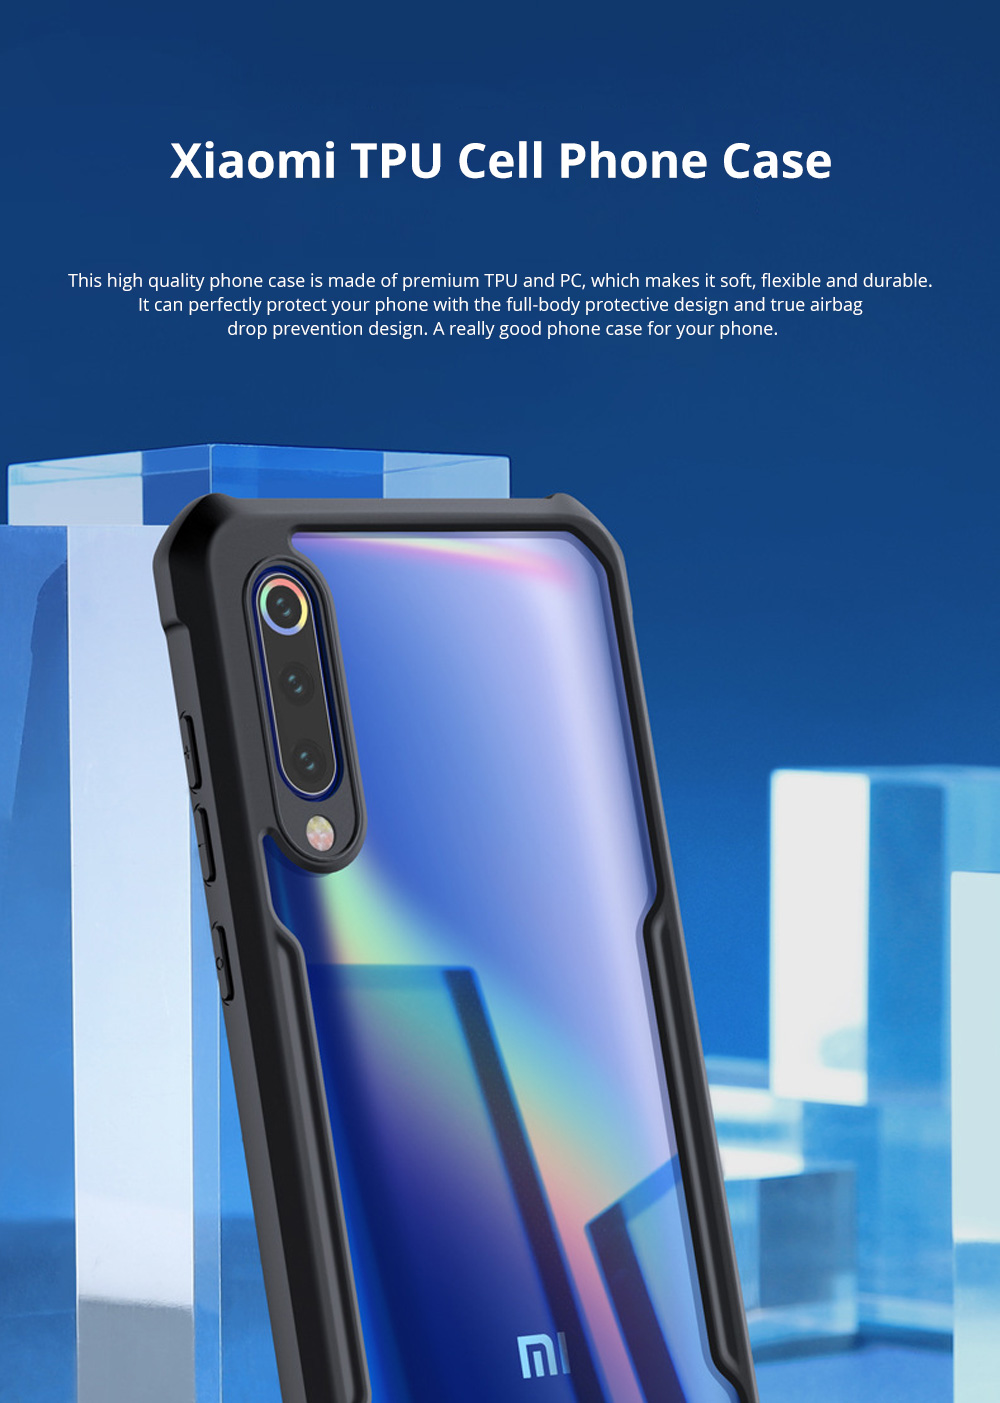 For Xiaomi Phone Case with Full-Body Protection Soft TPU Cell Phone Case with True Airbag Protection and Hanging Hole 0